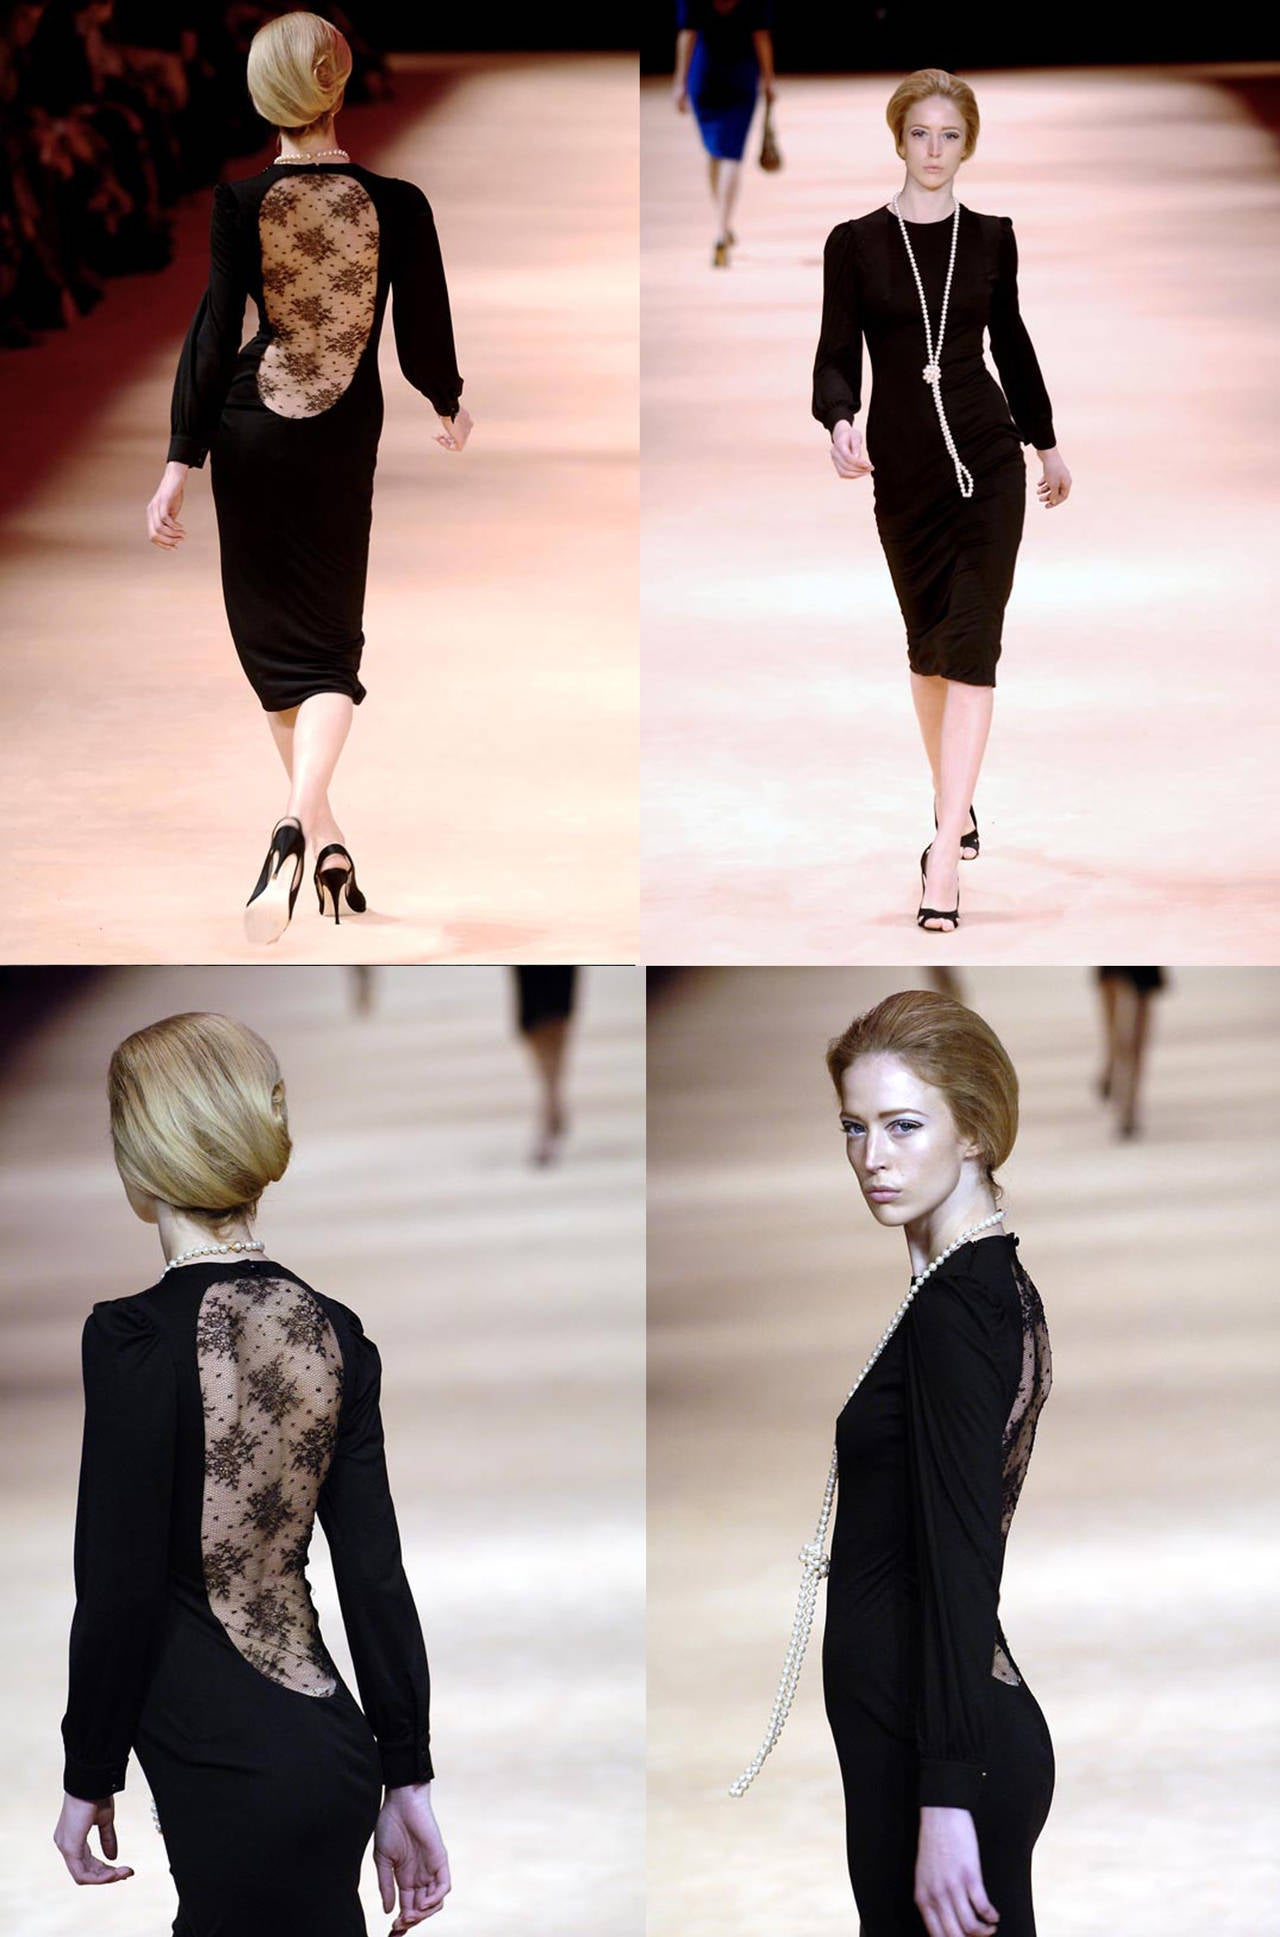 An exceptional evening dress by Alexander McQueen. The dress is made of a black high quality jersey and features a low cut open lace back and bishop sleeves. 